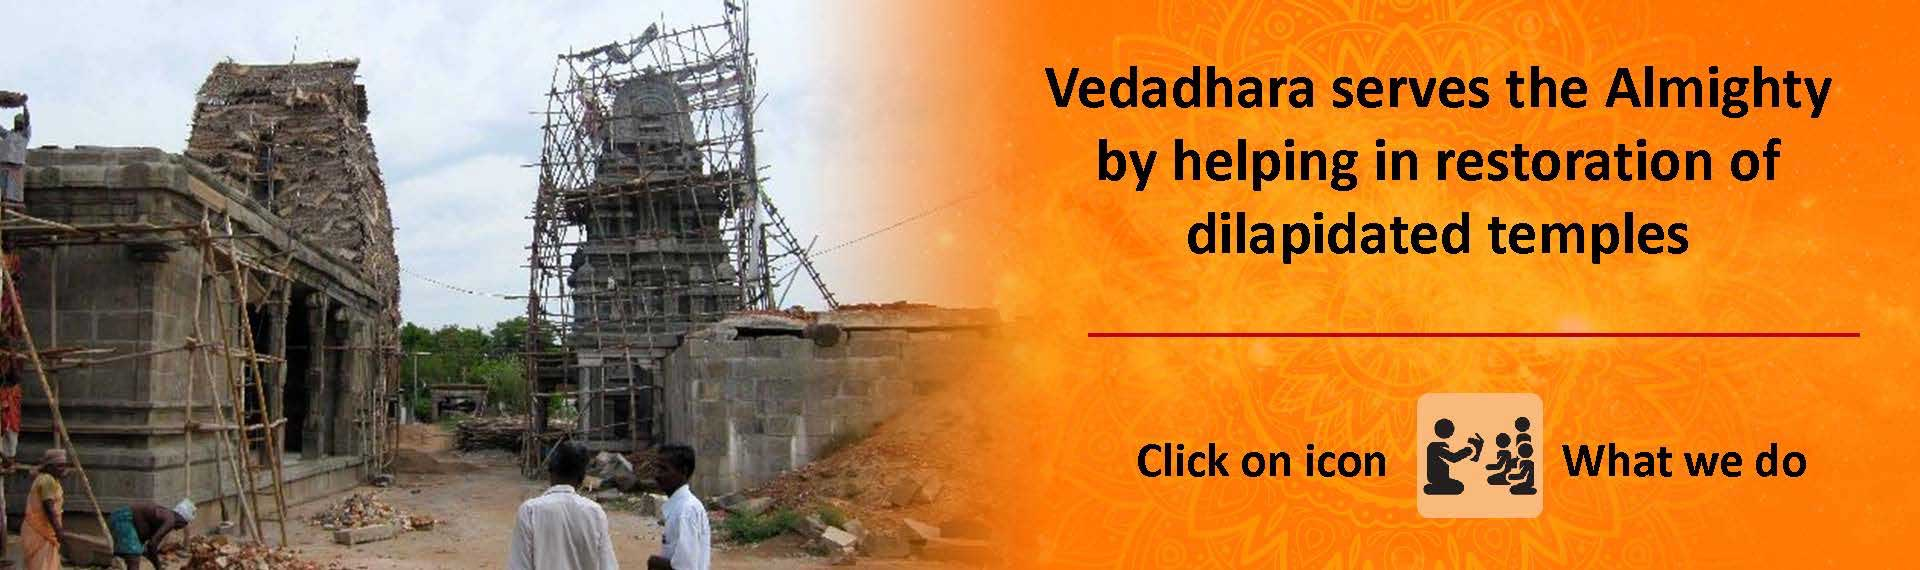 Helping in restoration of dilapidated temples